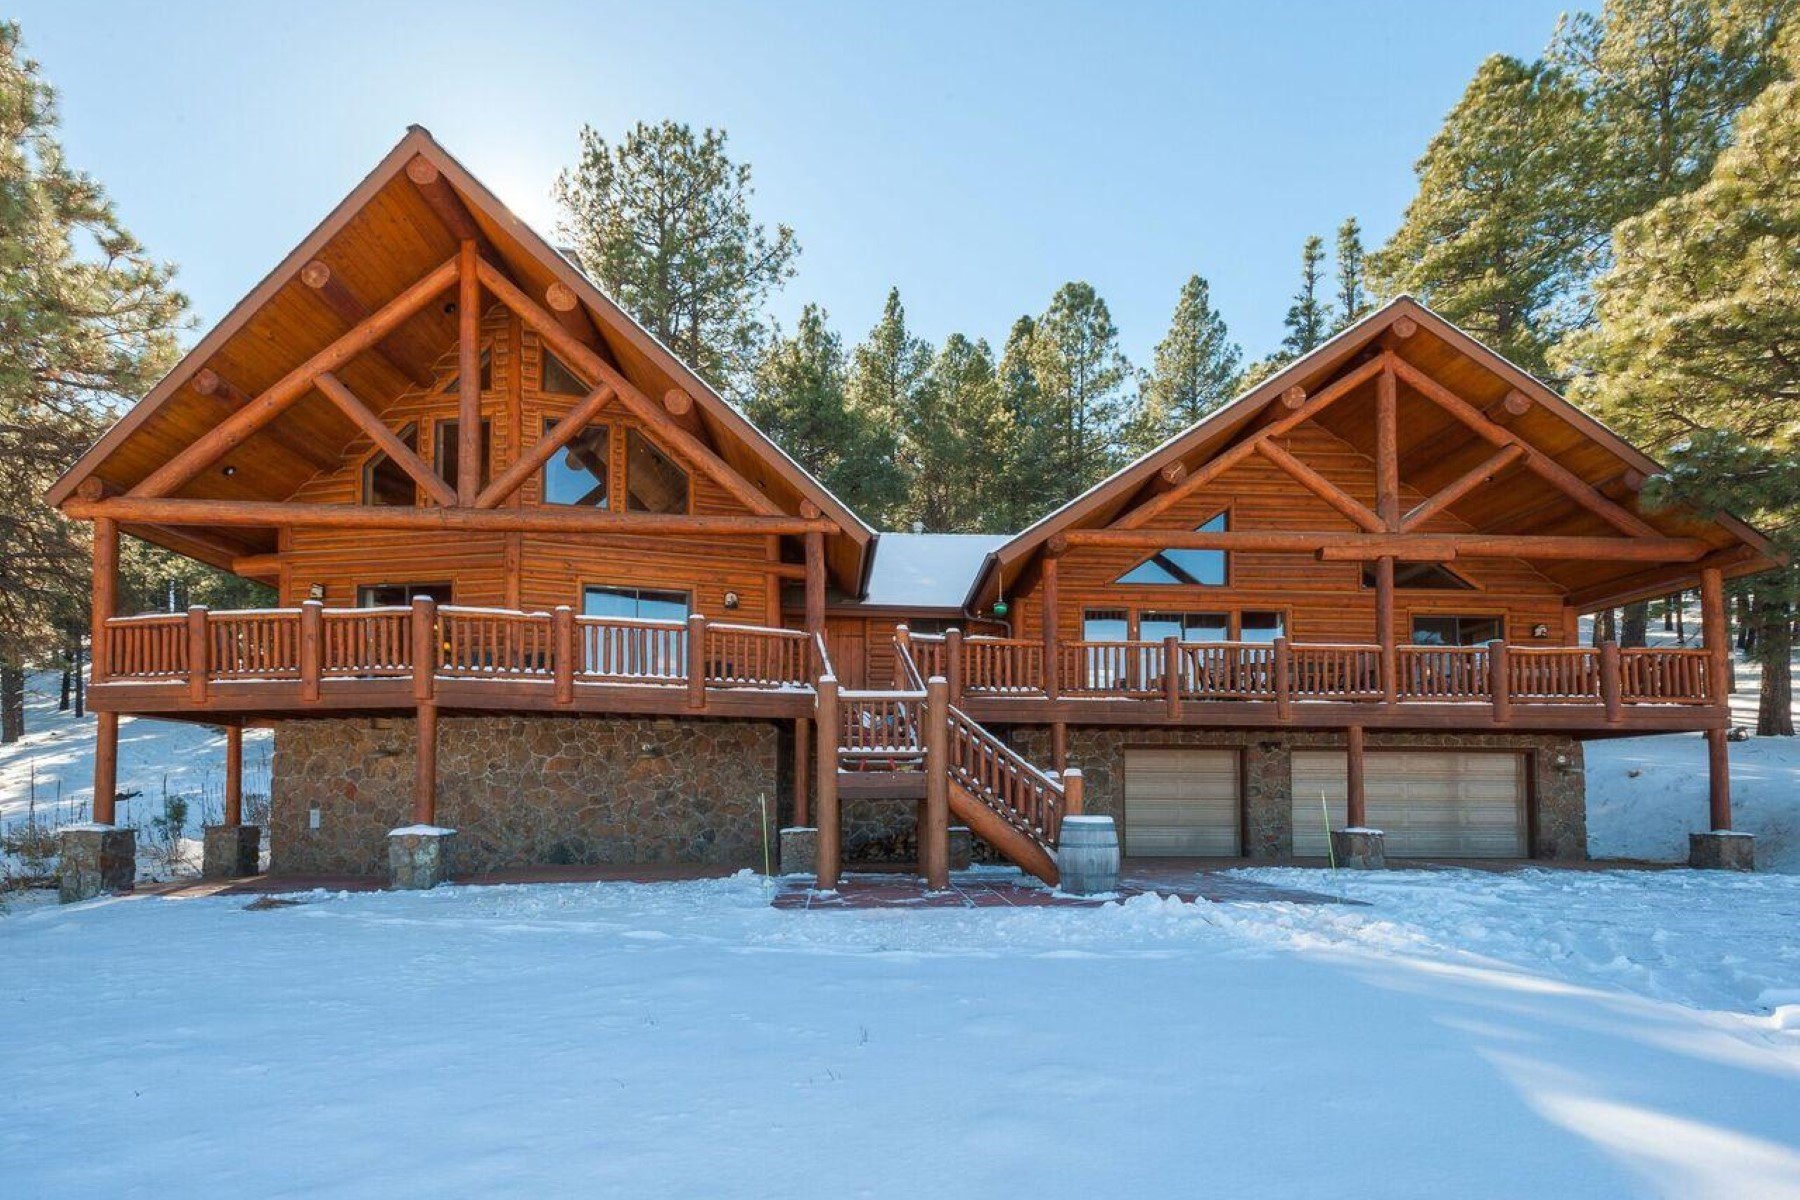 Single Family Home for Sale at 18 acres of free land with the best views in Northern Arizona 9405 W Hashknife Trl Flagstaff, Arizona, 86005 United States